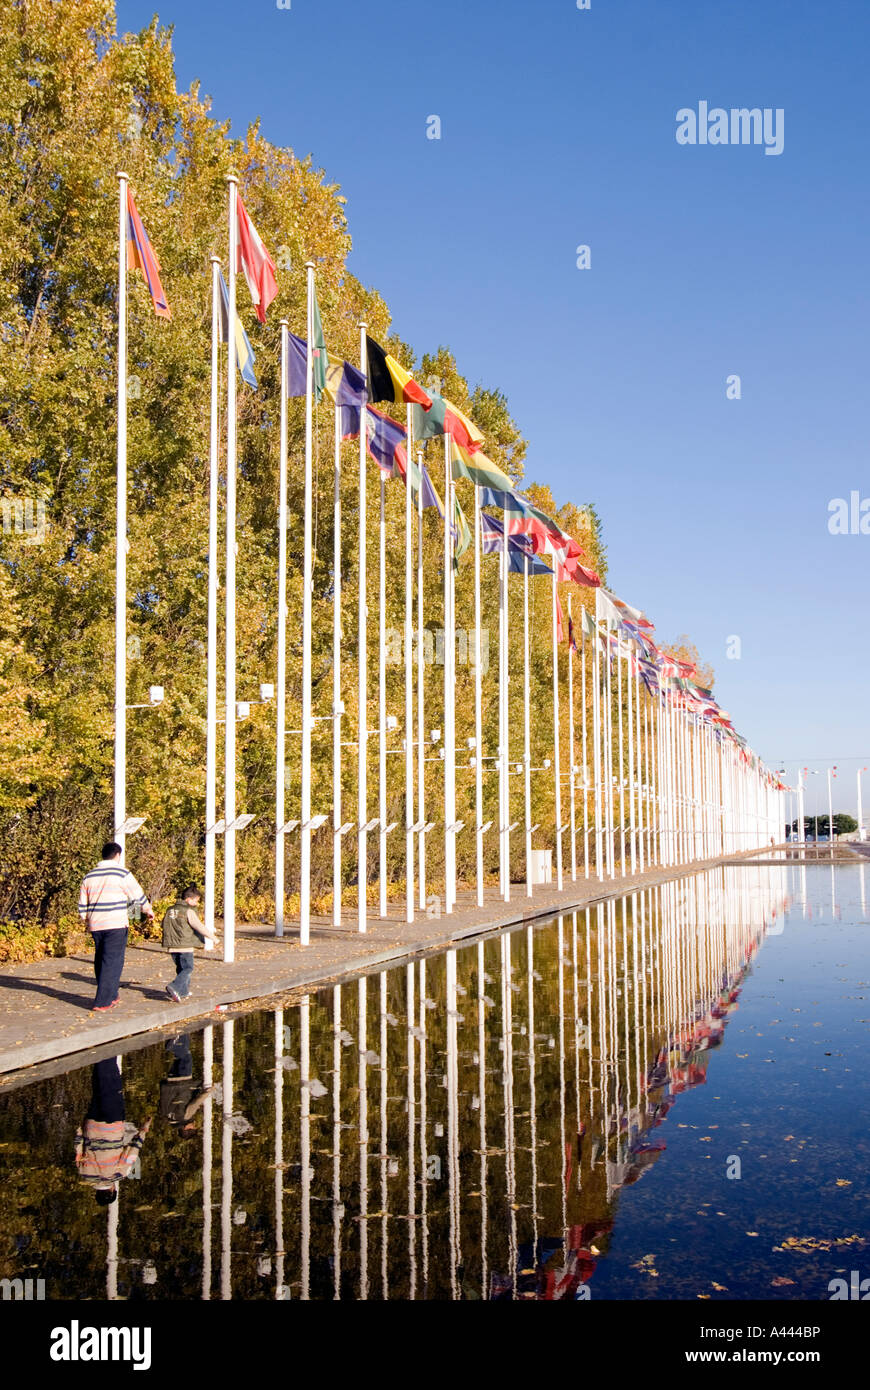 Rows of national flags at PARQUE DAS NACOES or Park of Nations in Lisbon Portugal - Stock Image